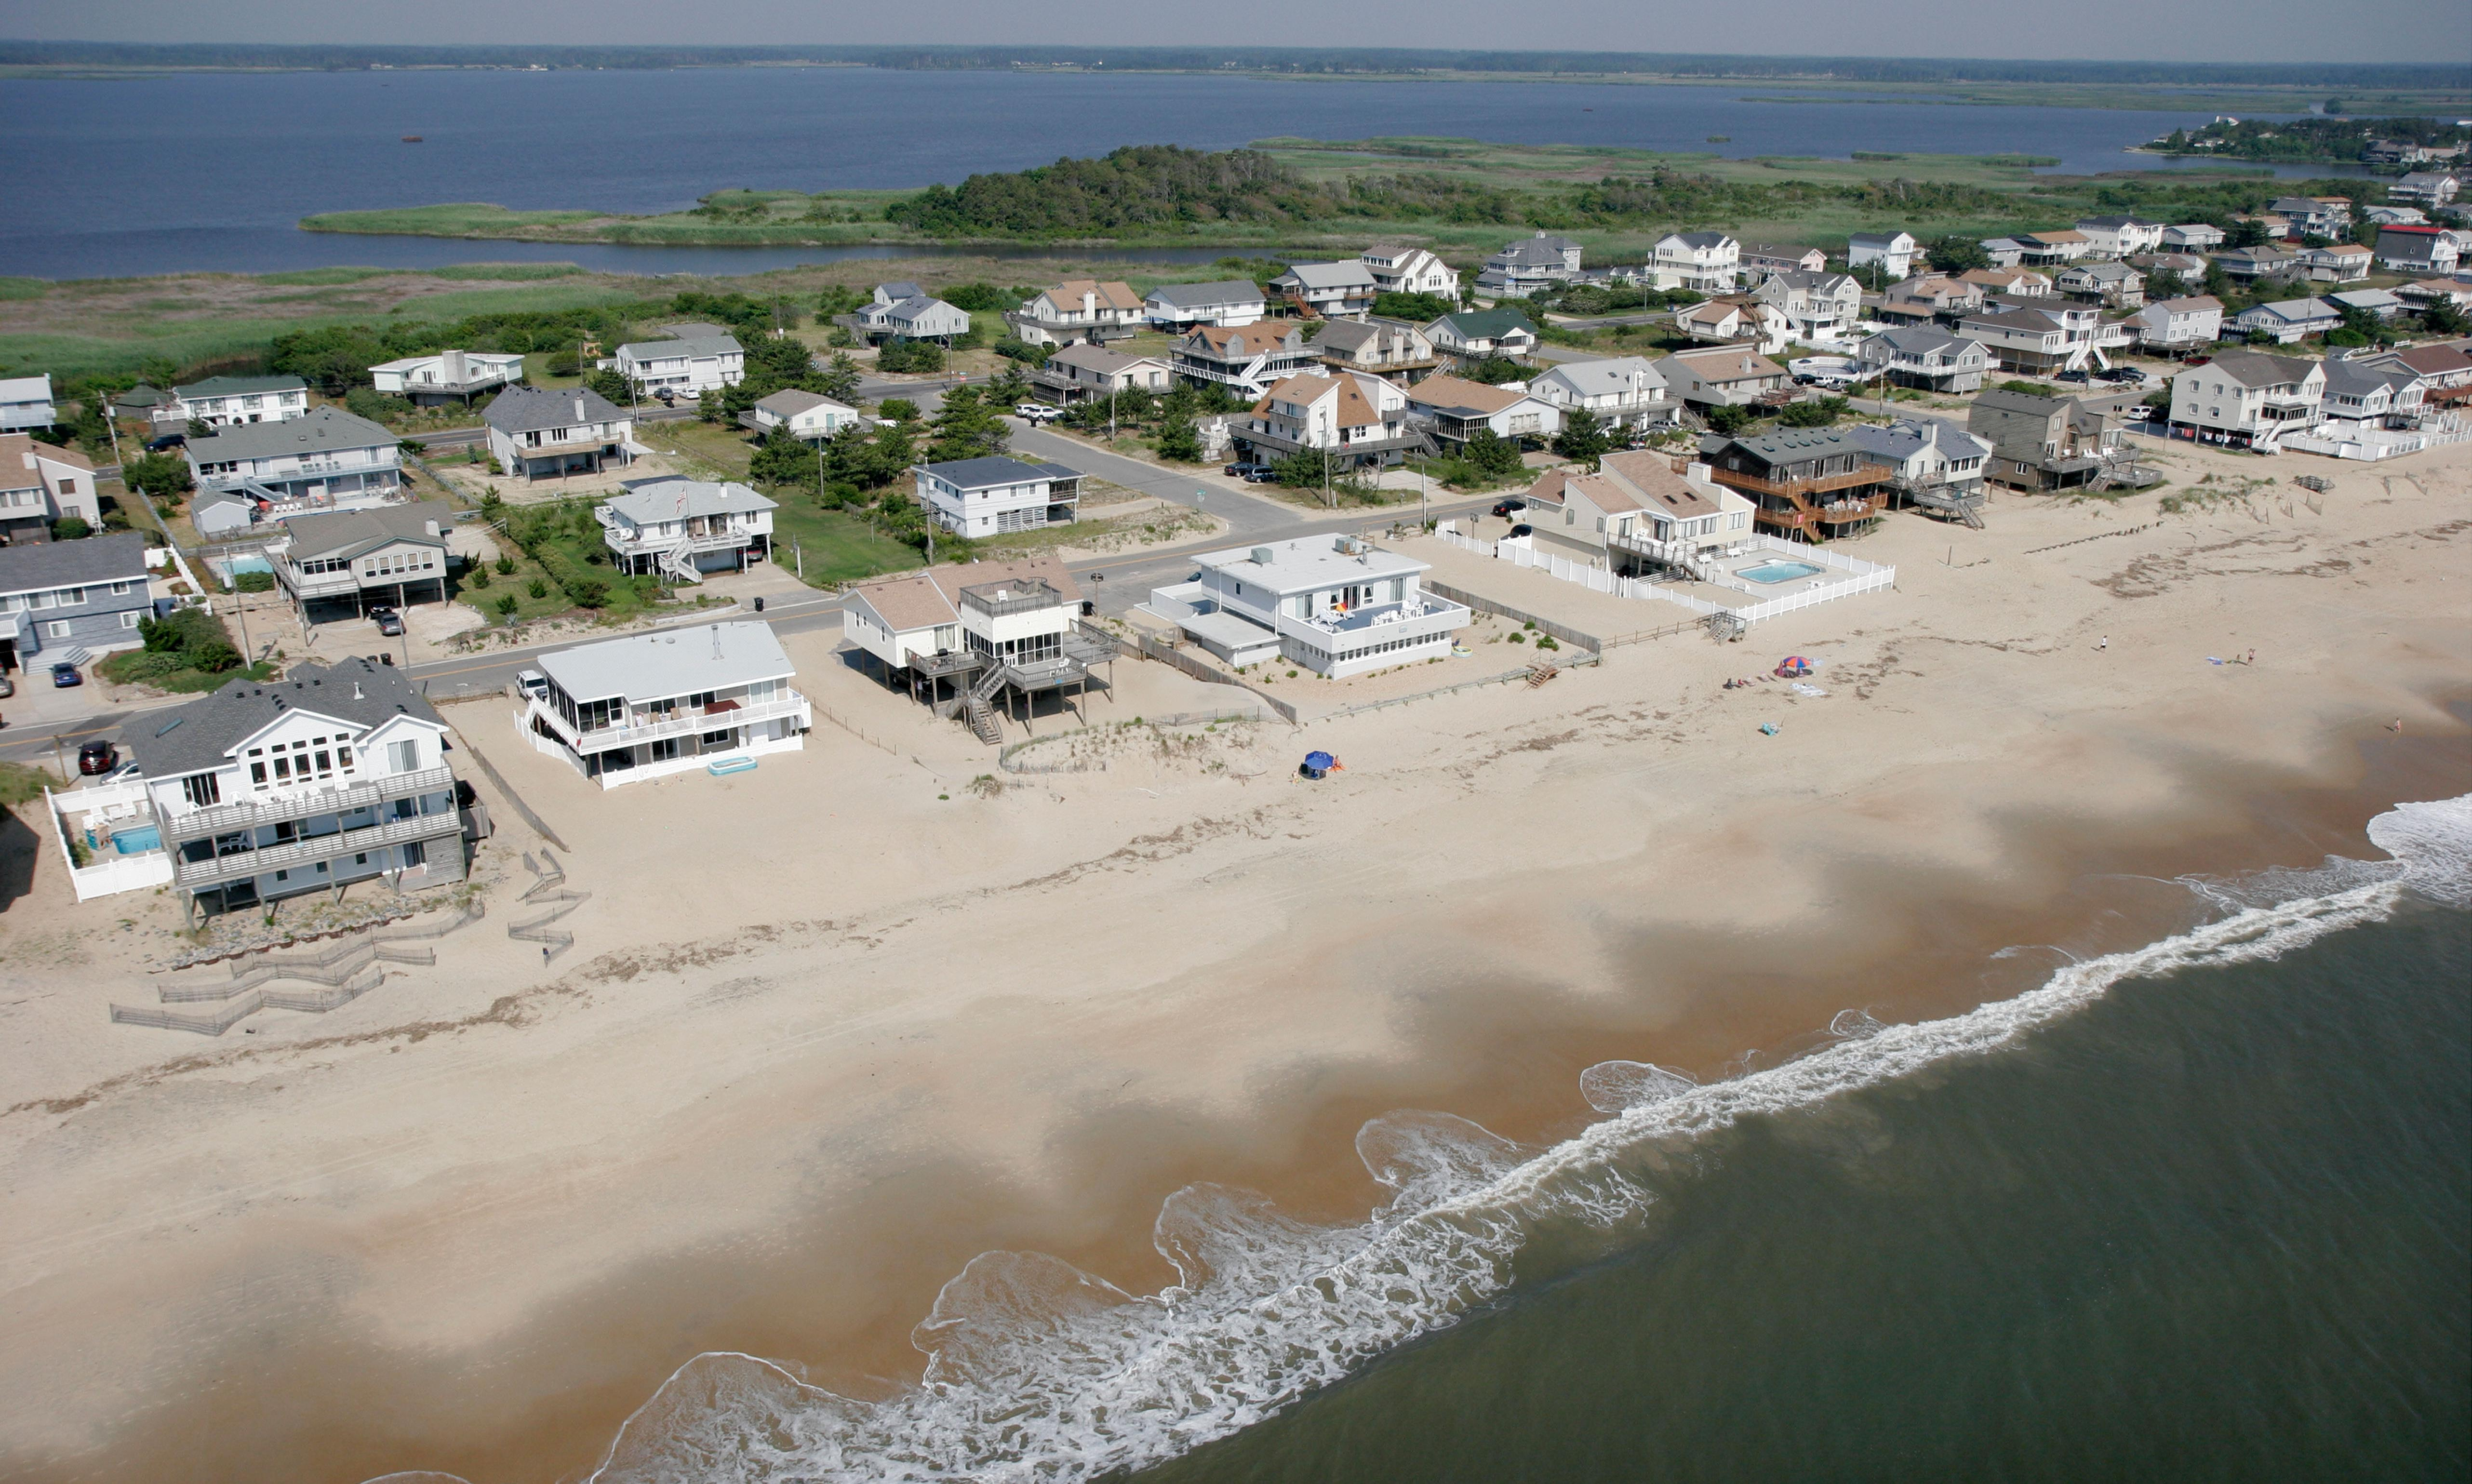 Flooding from sea level rise threatens over 300,000 US coastal homes – study